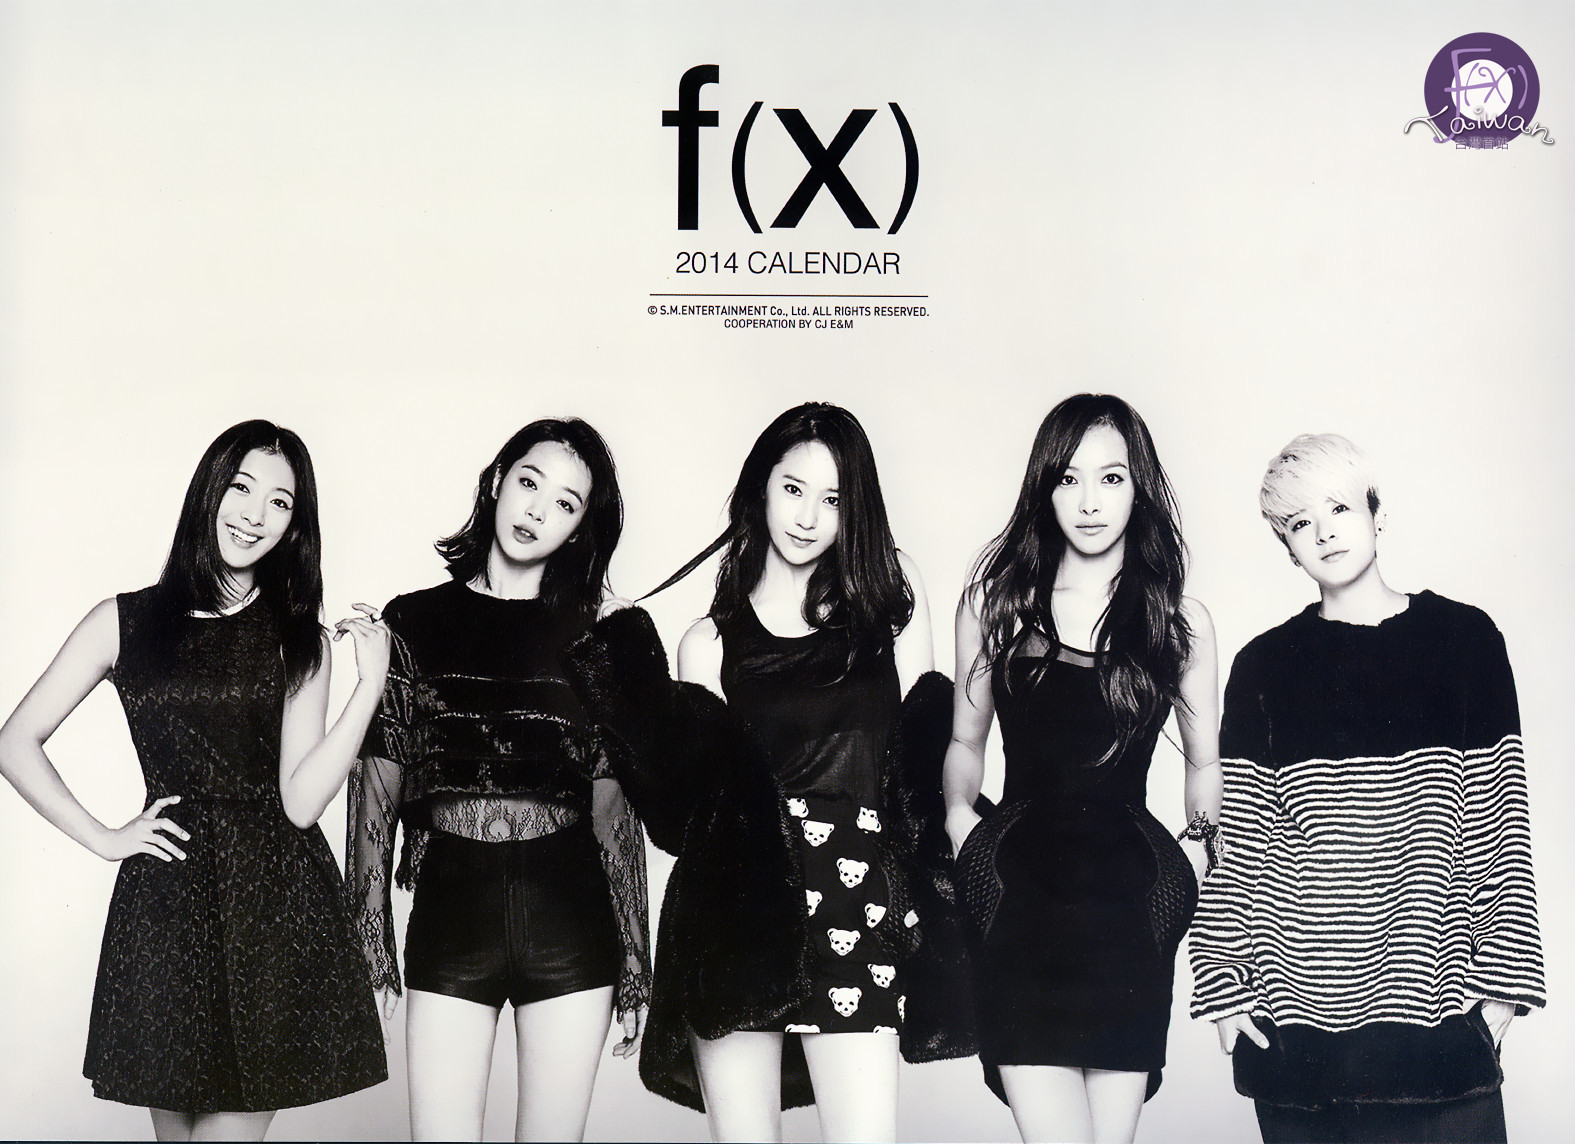 F X Wallpapers Music Hq F X Pictures 4k Wallpapers 2019